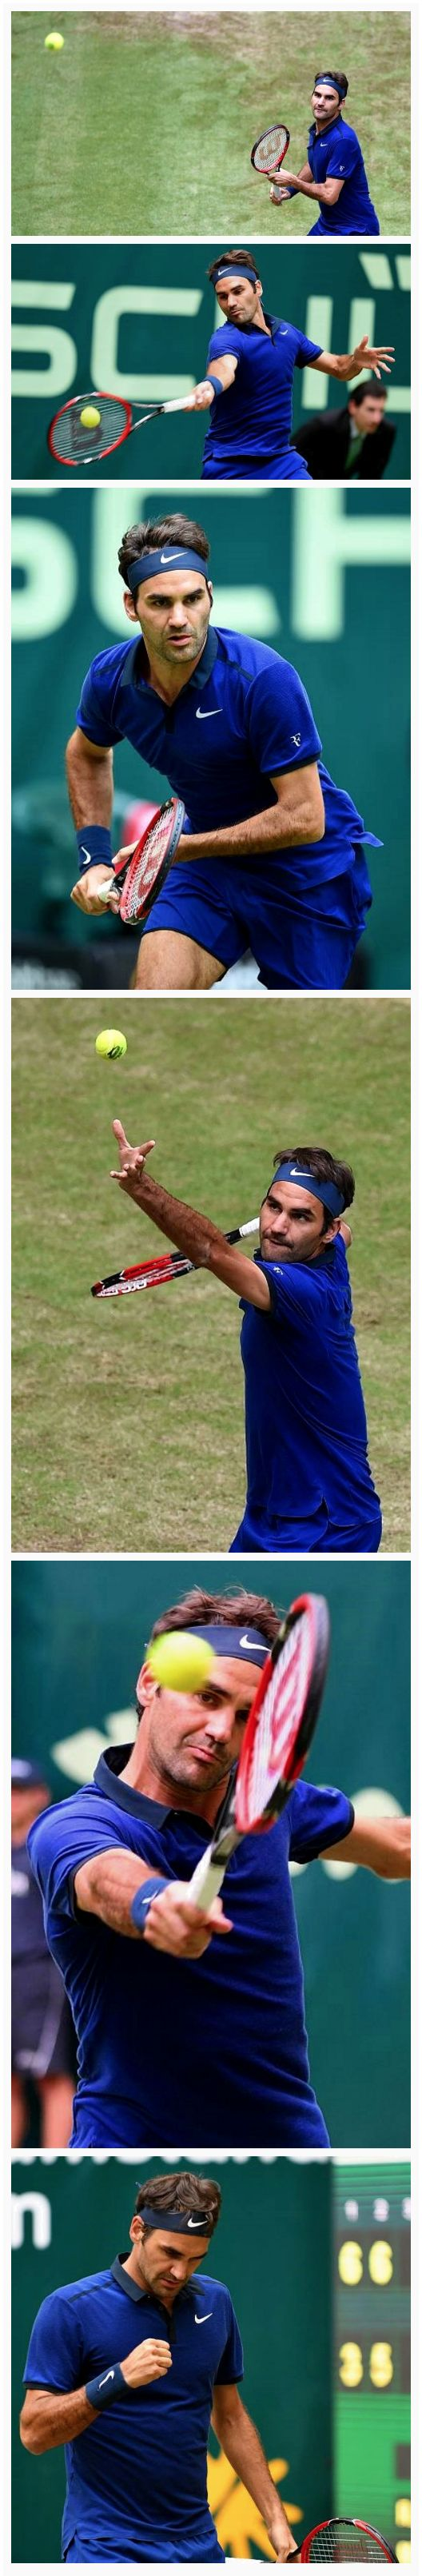 Roger Federer defeats Malek Jaziri 6-3 7-5 in the 2nd round of the Gerry Weber Open.